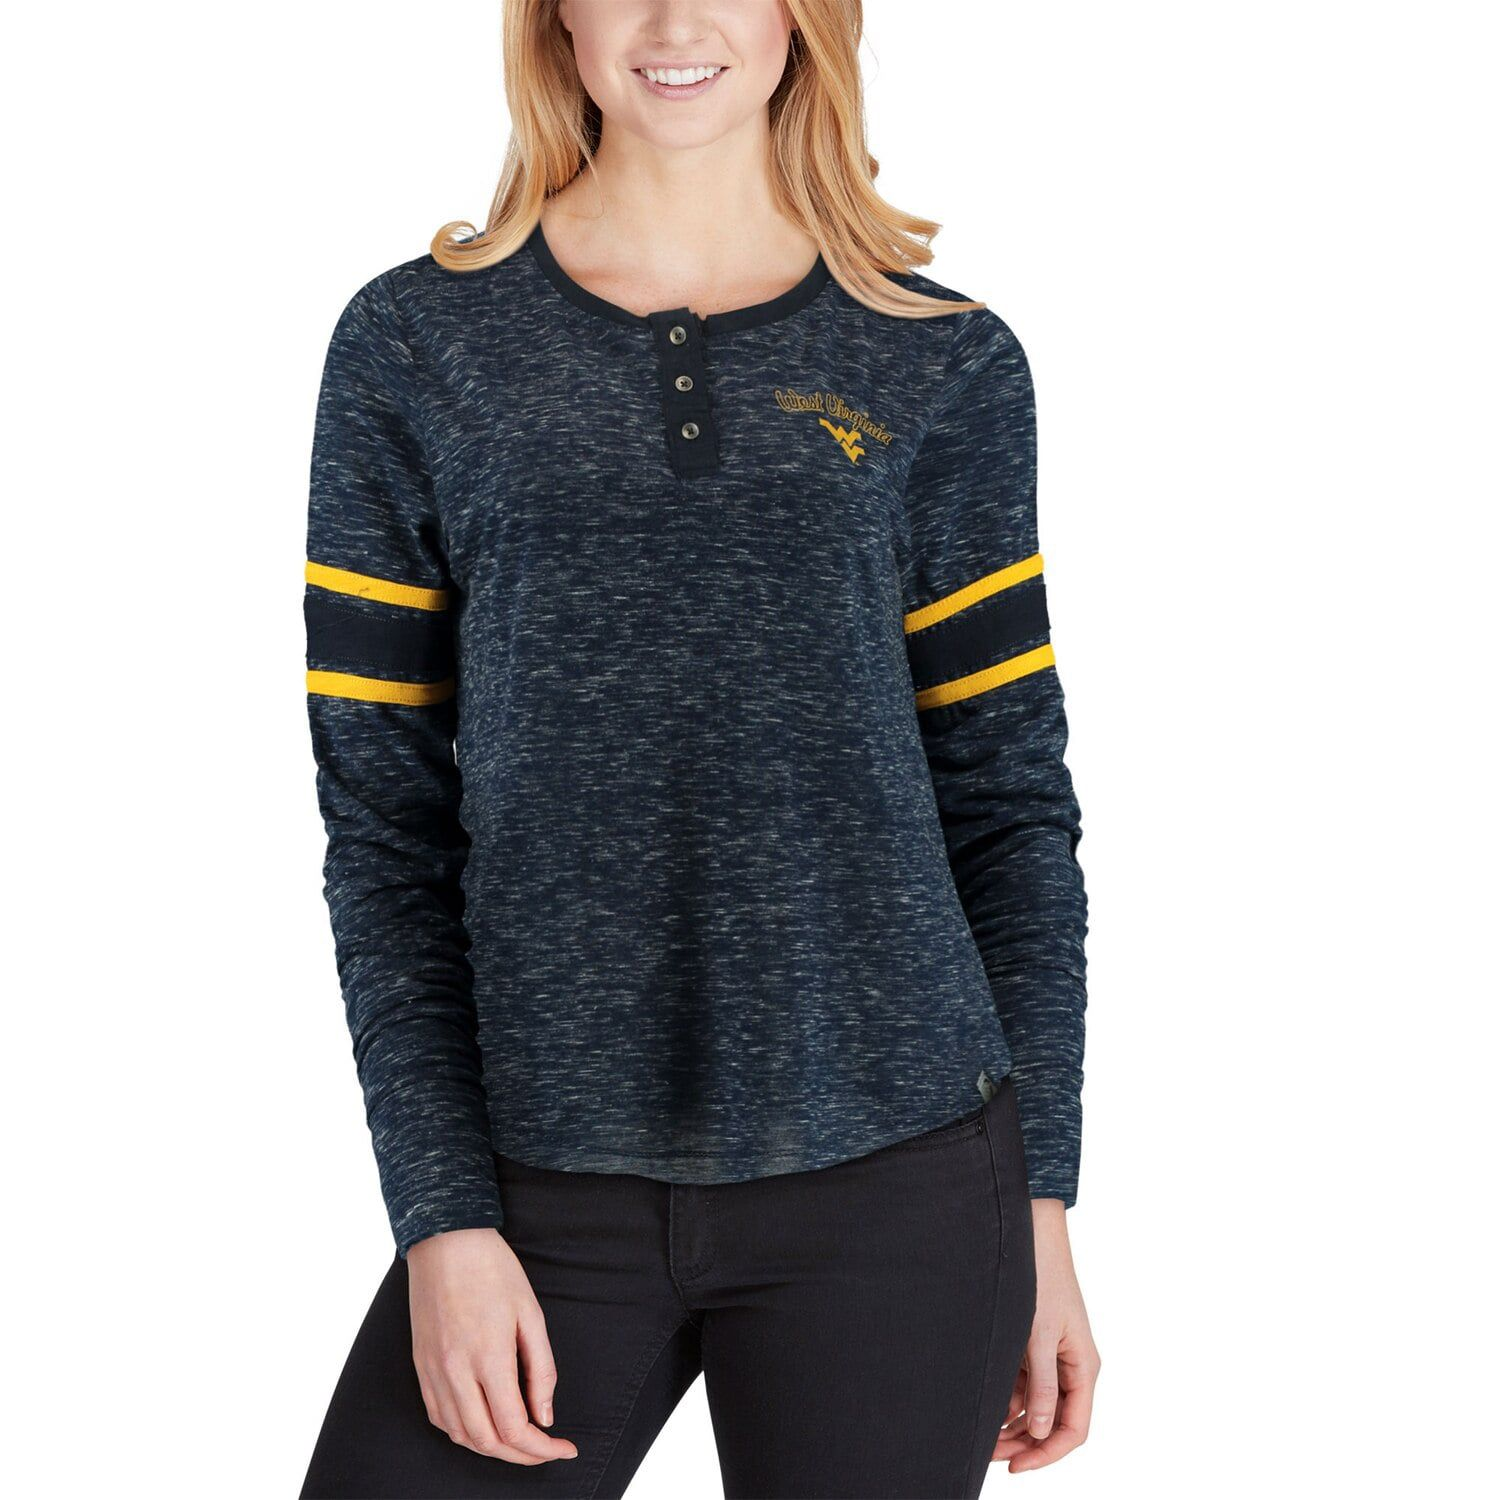 Women's Colosseum Navy West Virginia Mountaineers Stag Leap Sleeve Striped Long Sleeve Henley T-Shirt #westvirginia